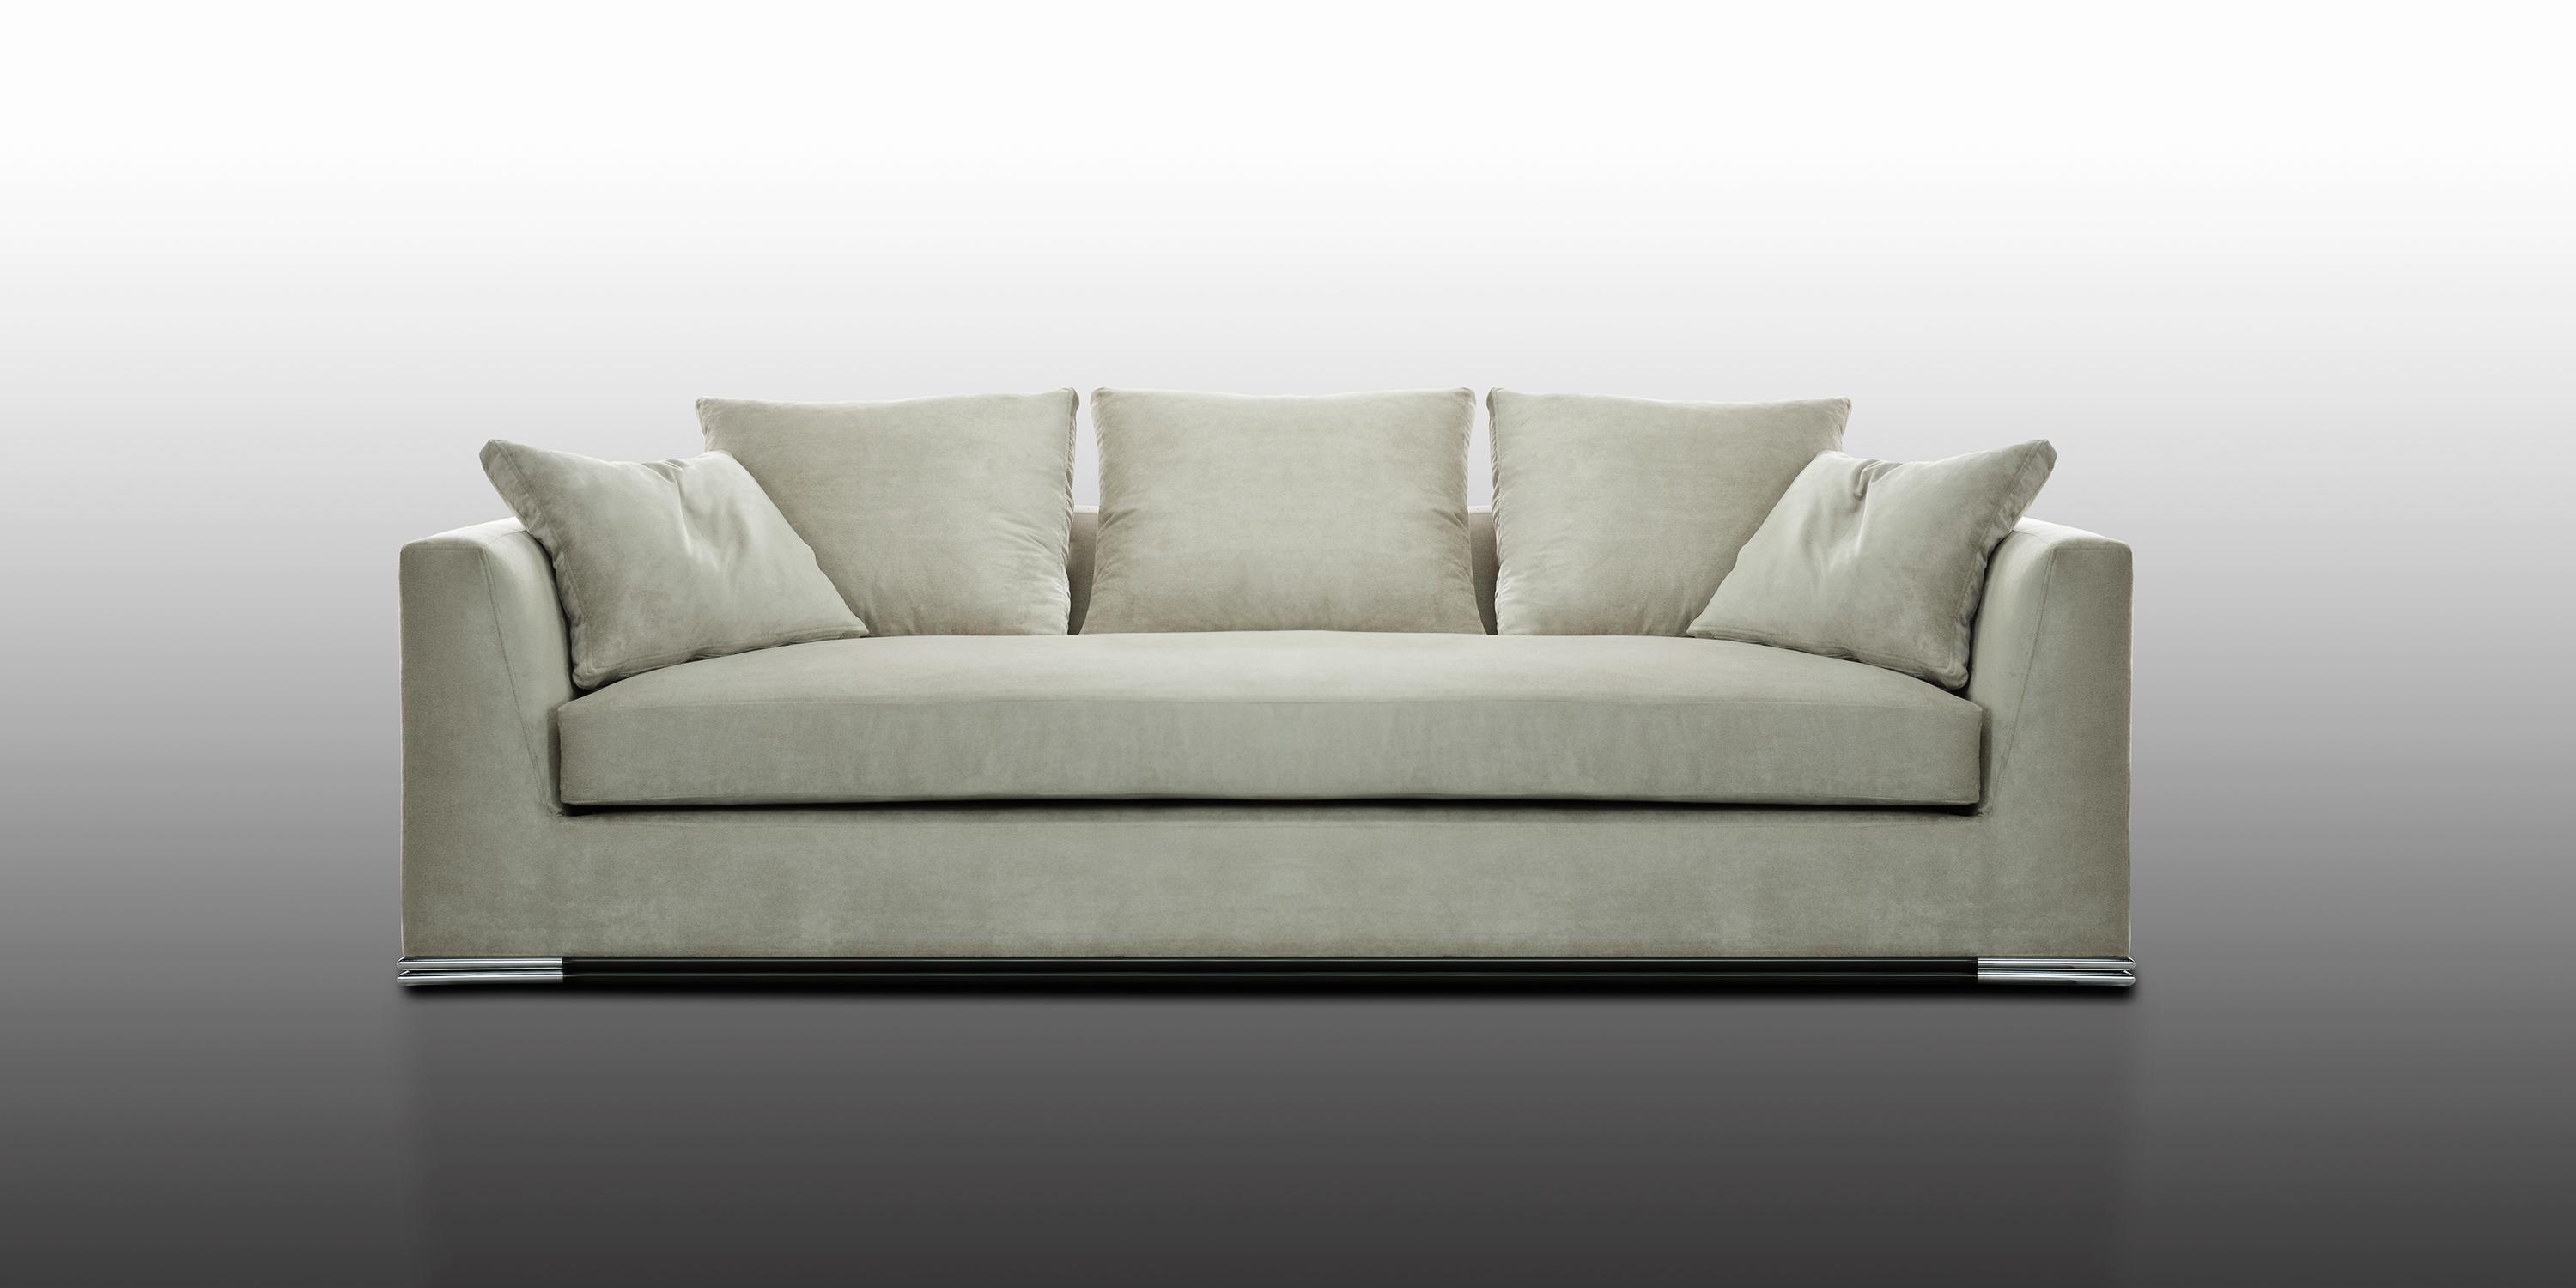 Sofas Center : Astounding Nathan Anthony Sofa Pictures Ideas Na Hp Intended For Nathan Anthony Sofas (Image 18 of 20)